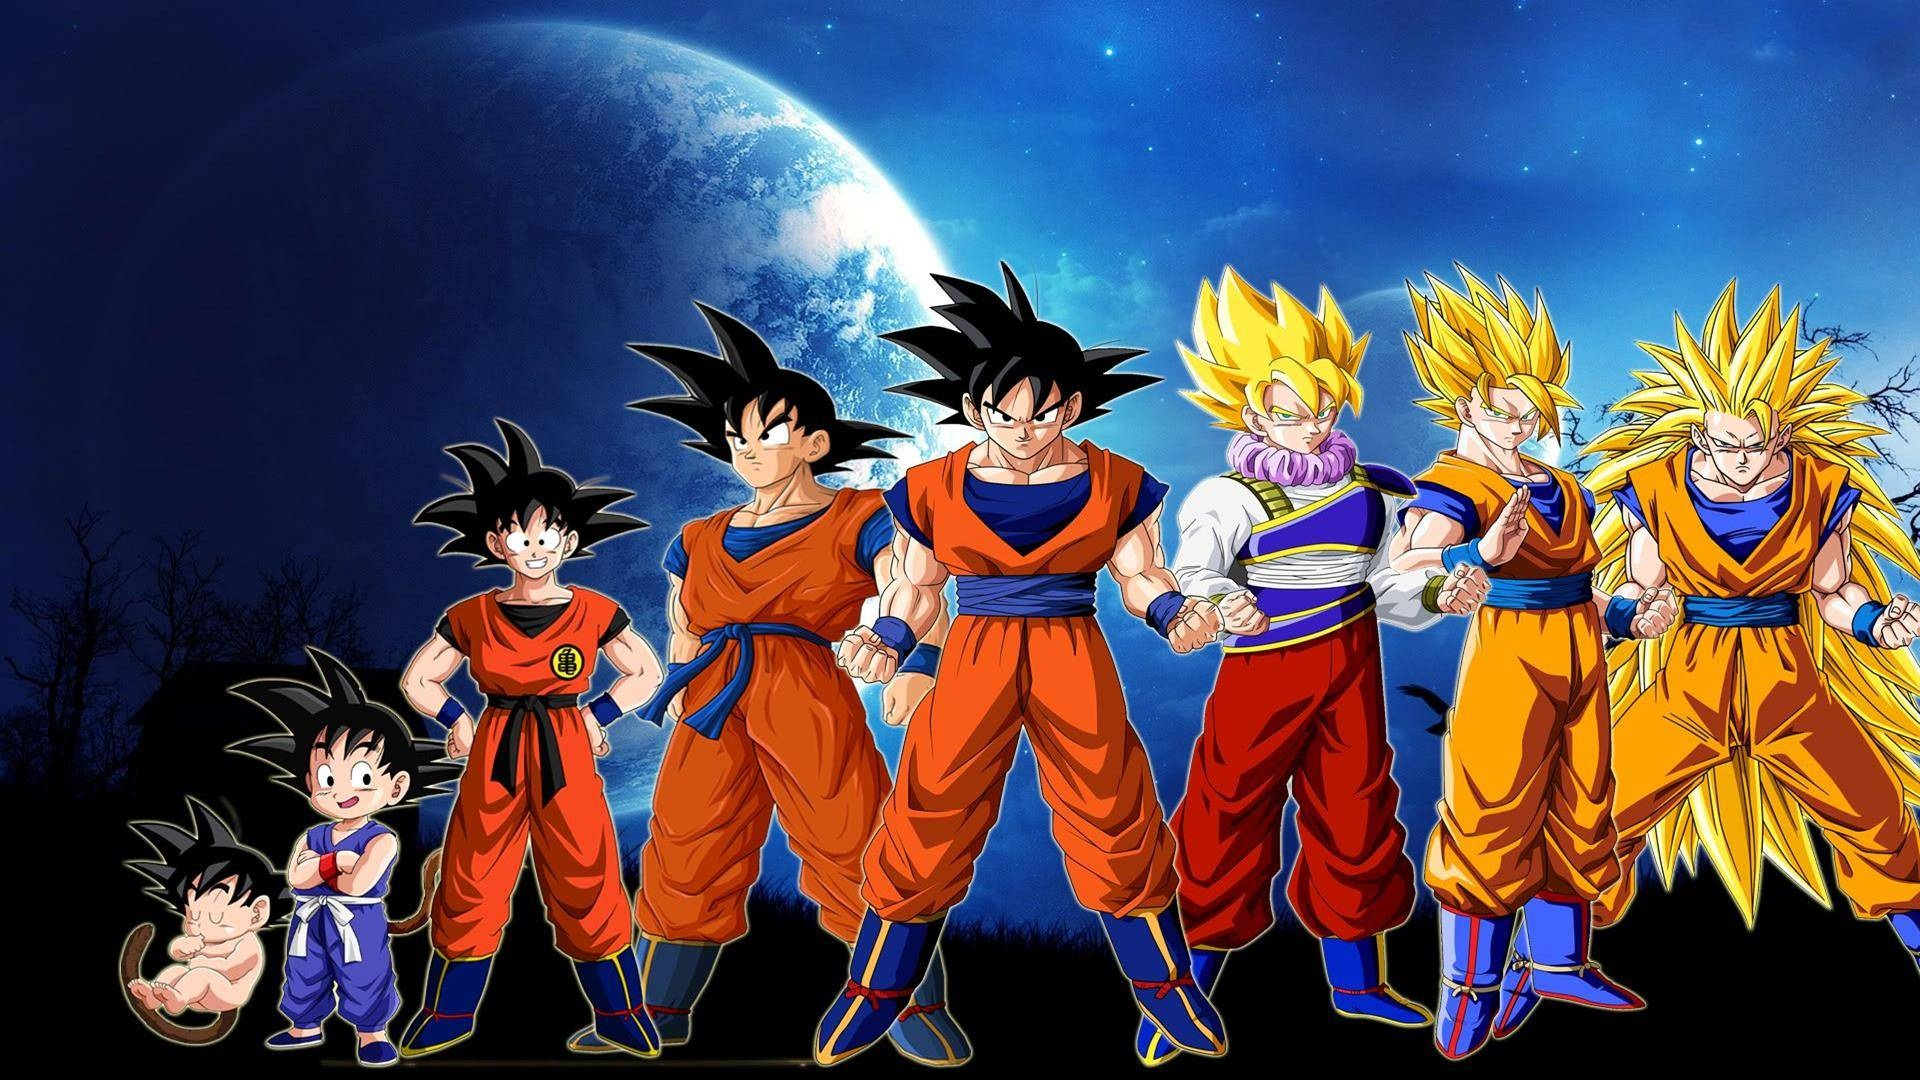 Cool Dragonball Z Wallpapers